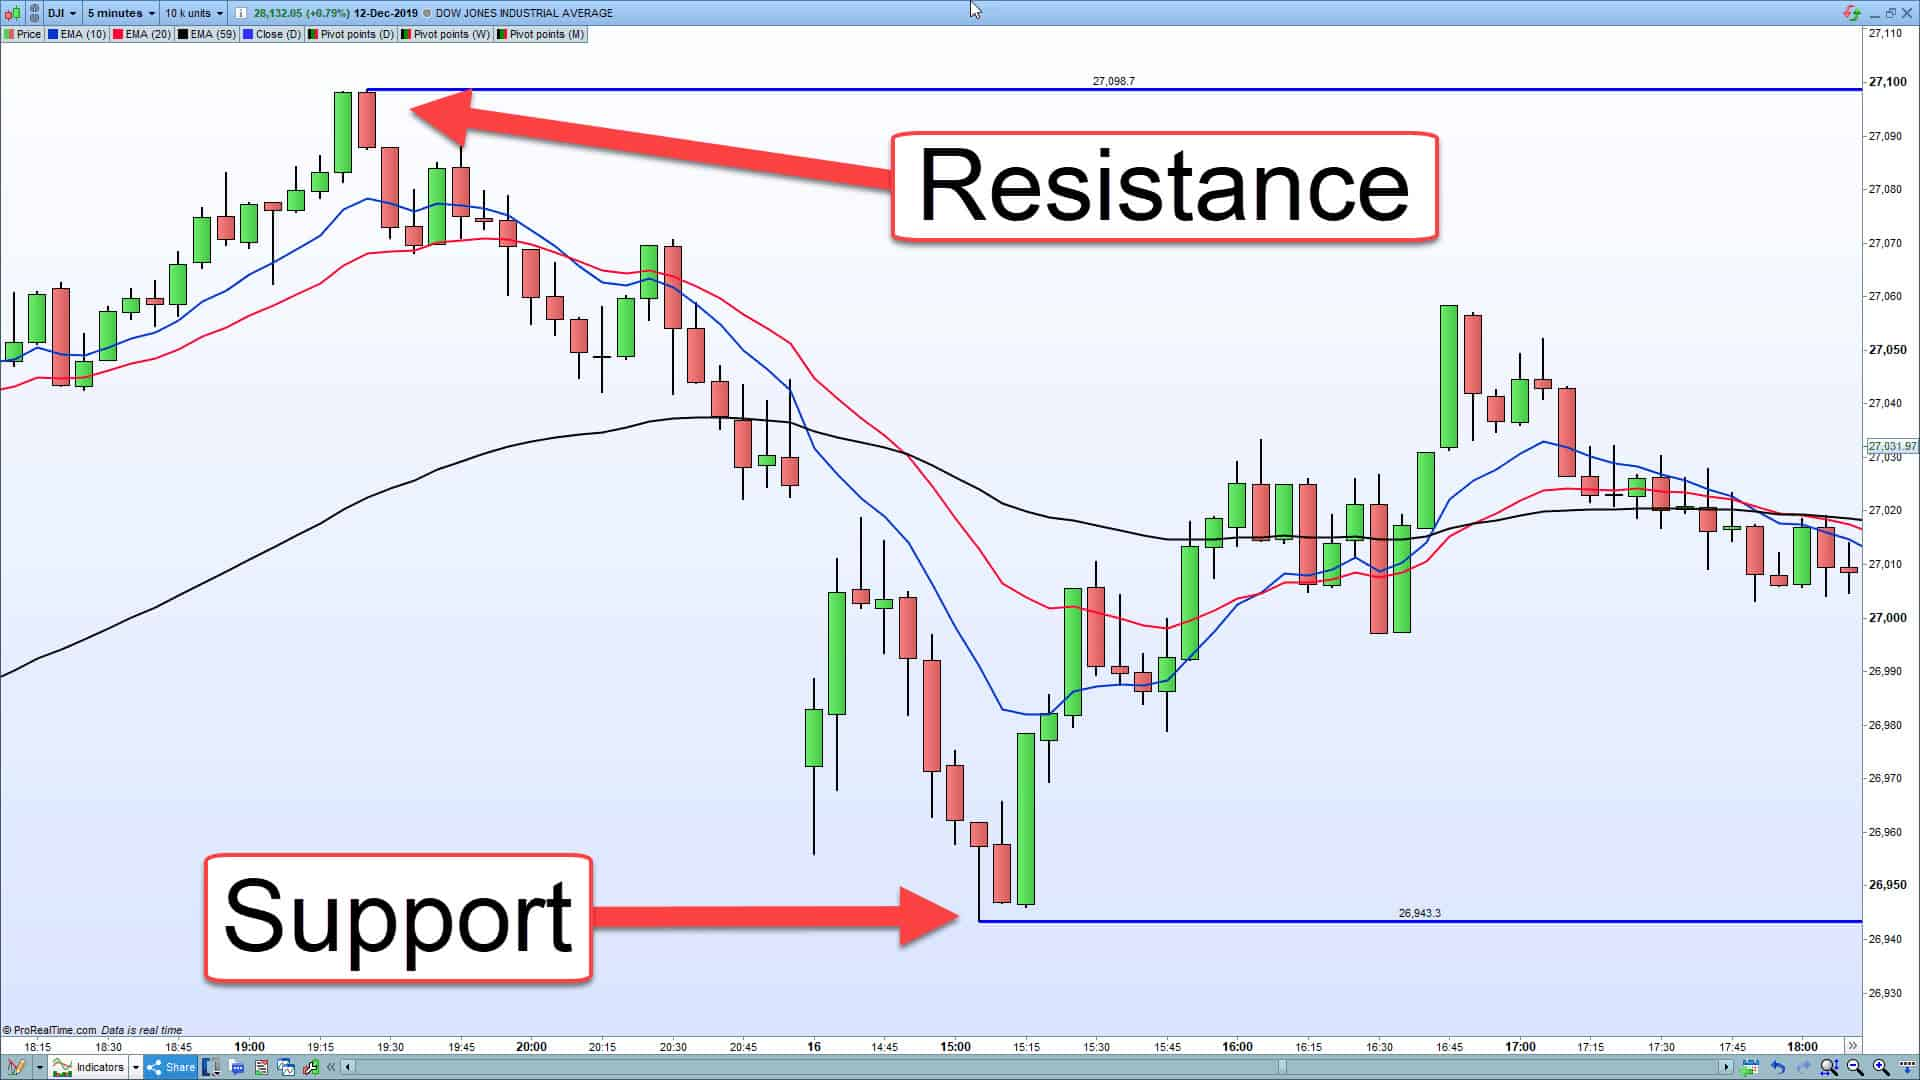 A chart showing support and resistance